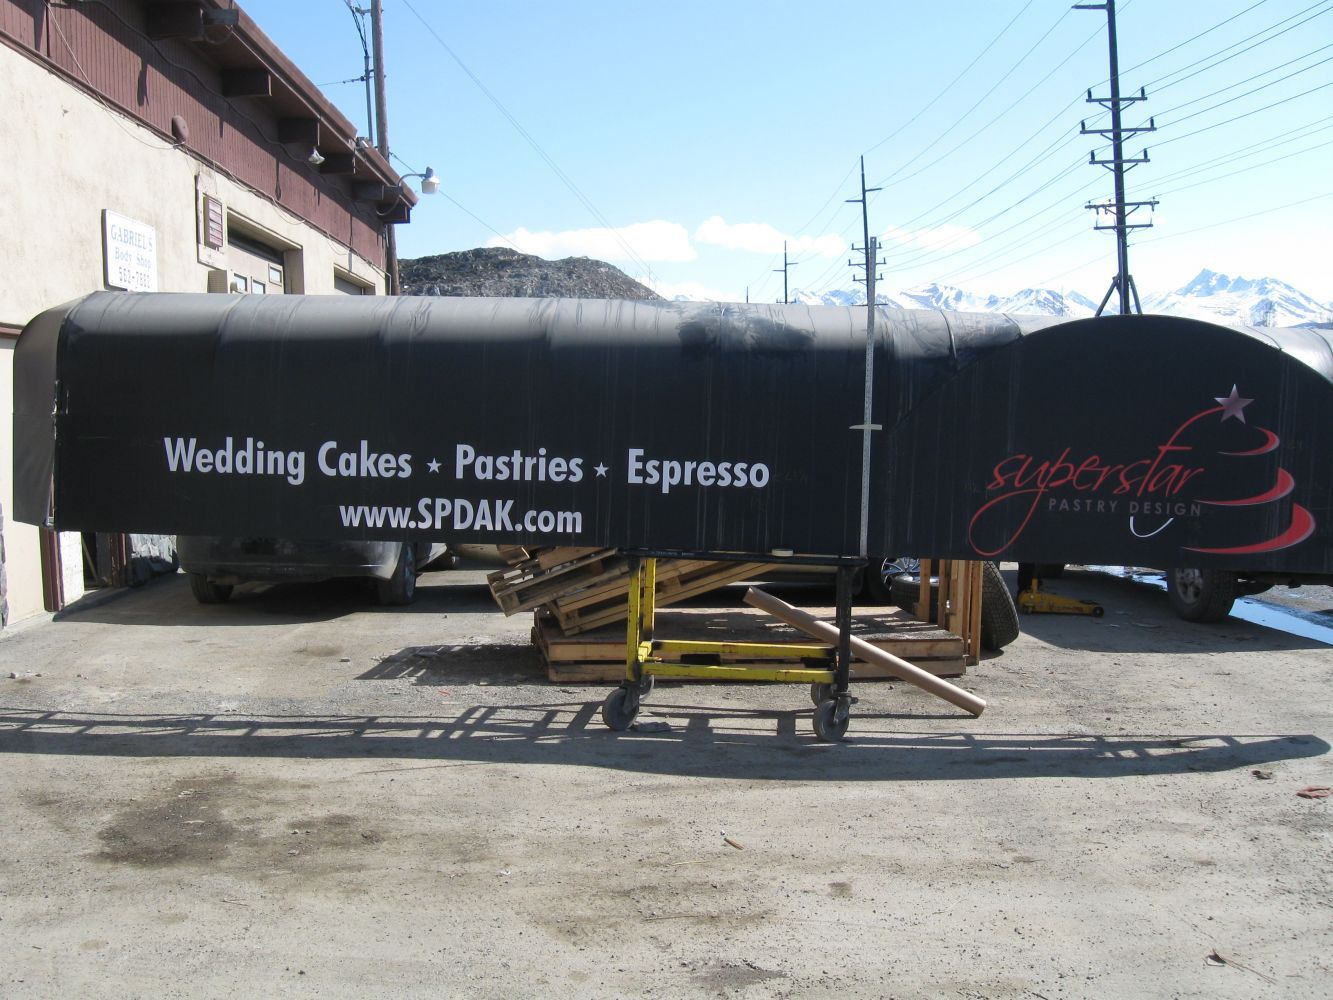 On-site fabrication of signage